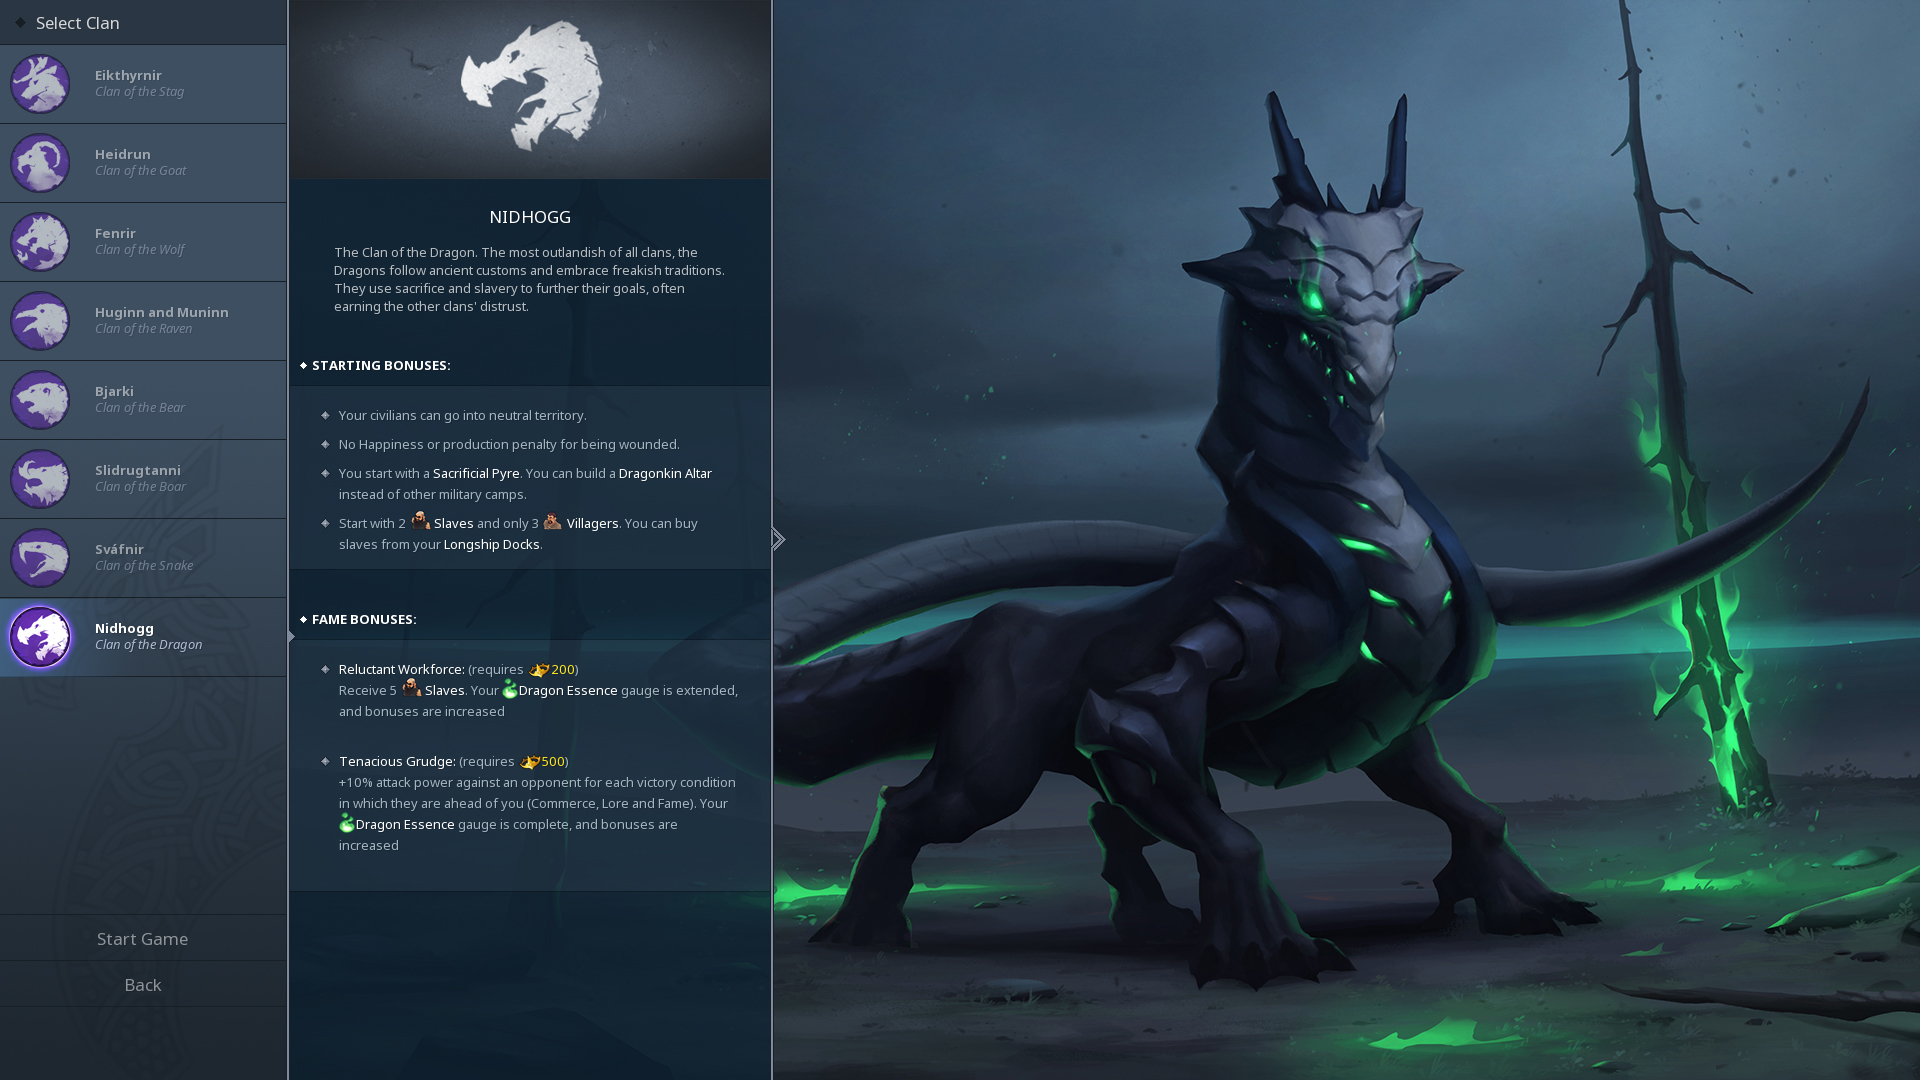 Northgard Releases Nidhogg: The Clan of the Dragon DLC